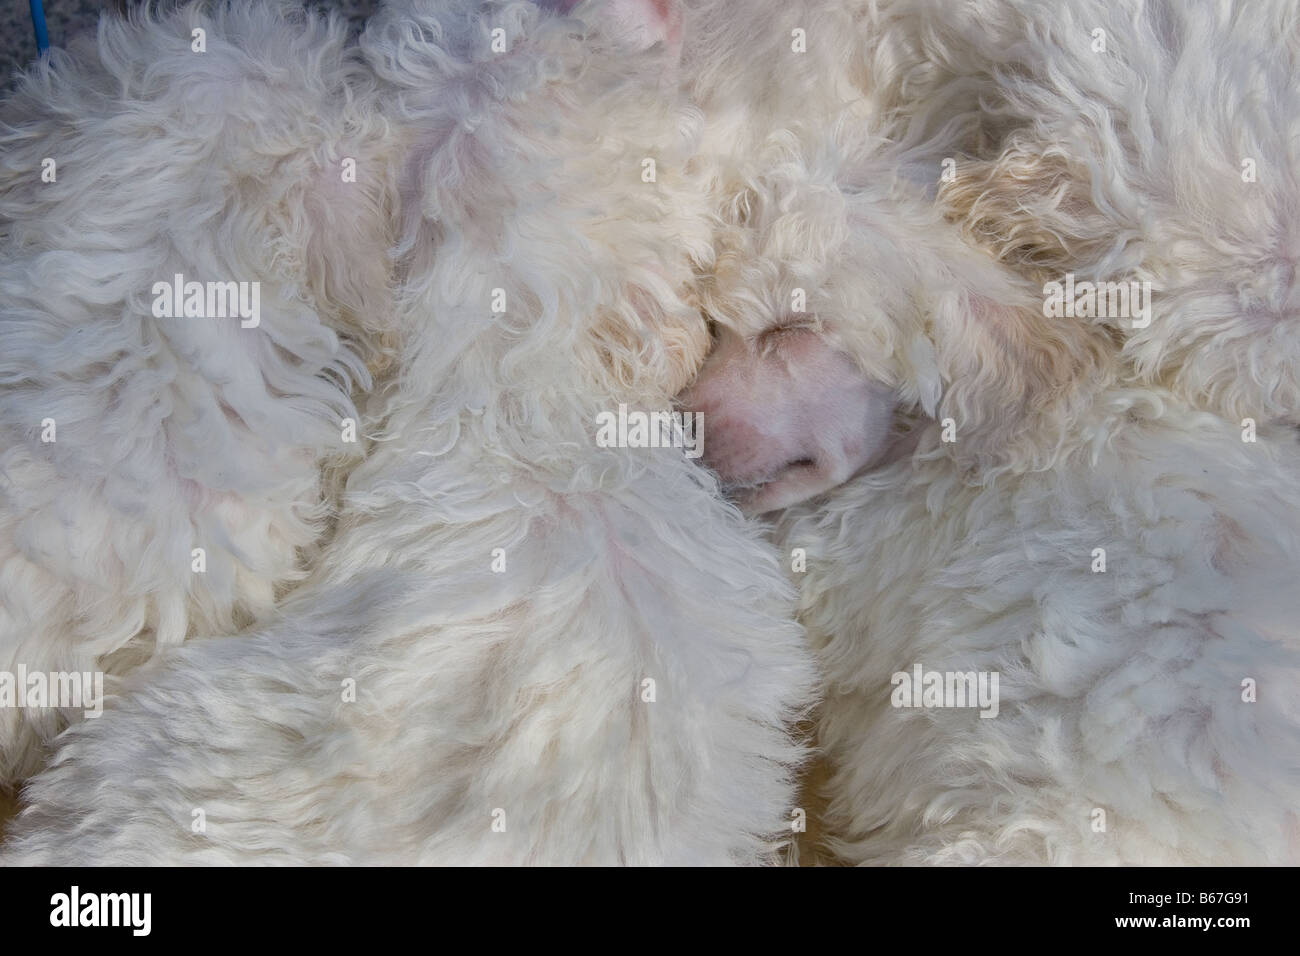 Snoozing Poodles - Stock Image